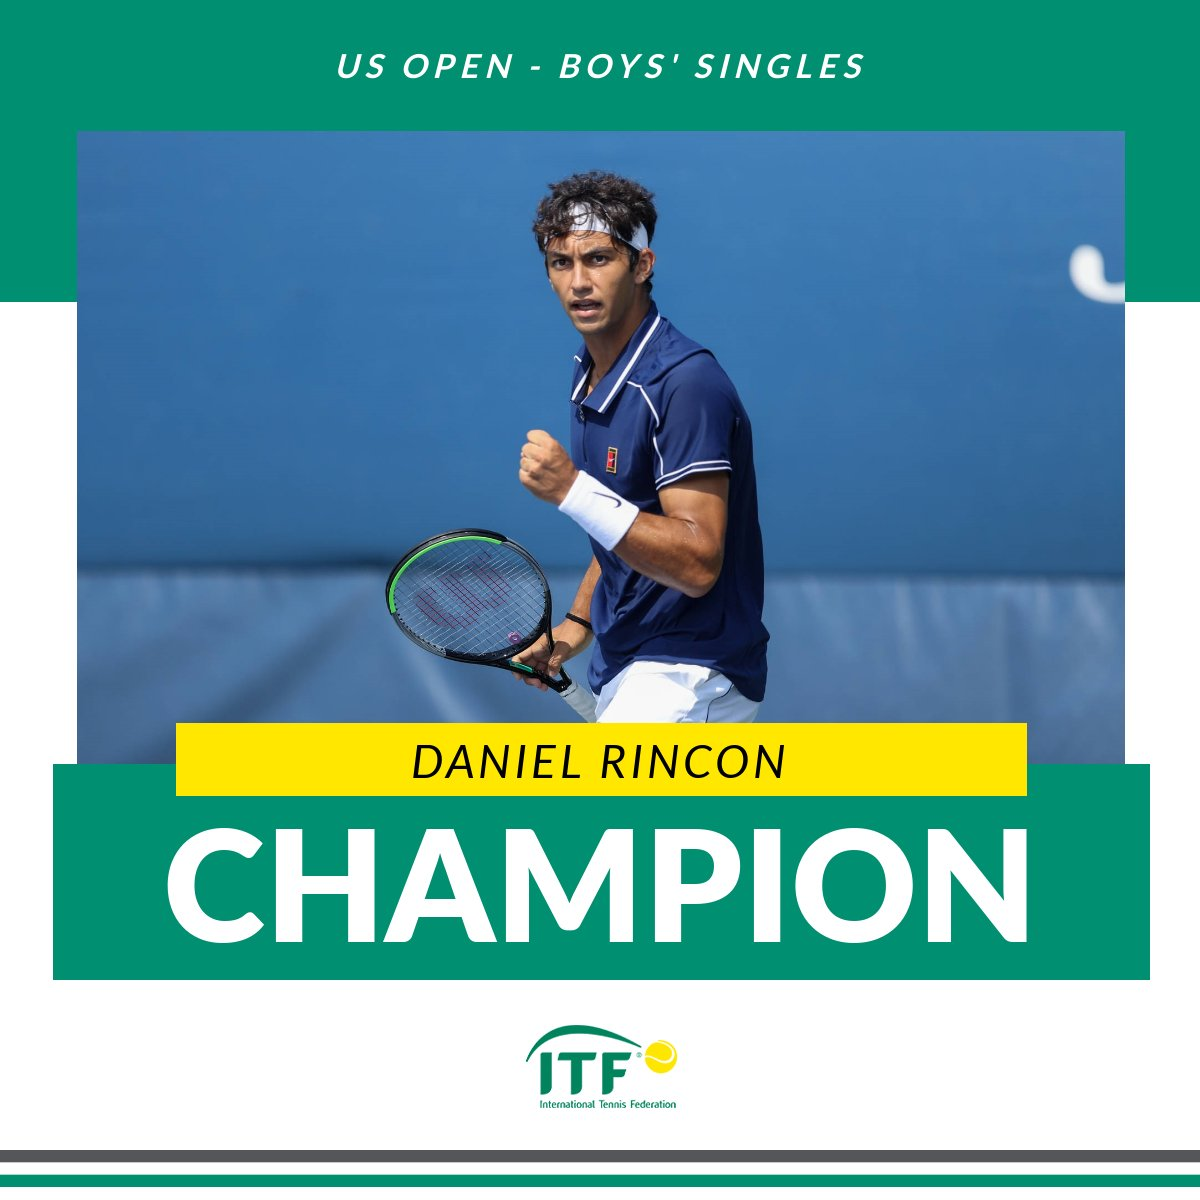 Congratulations to Daniel Rincón 🇪🇸, who claimed the #USOpen boys' singles title after a 6-2 7-6(6) win over Juncheng Shang 🇨🇳 in the final.